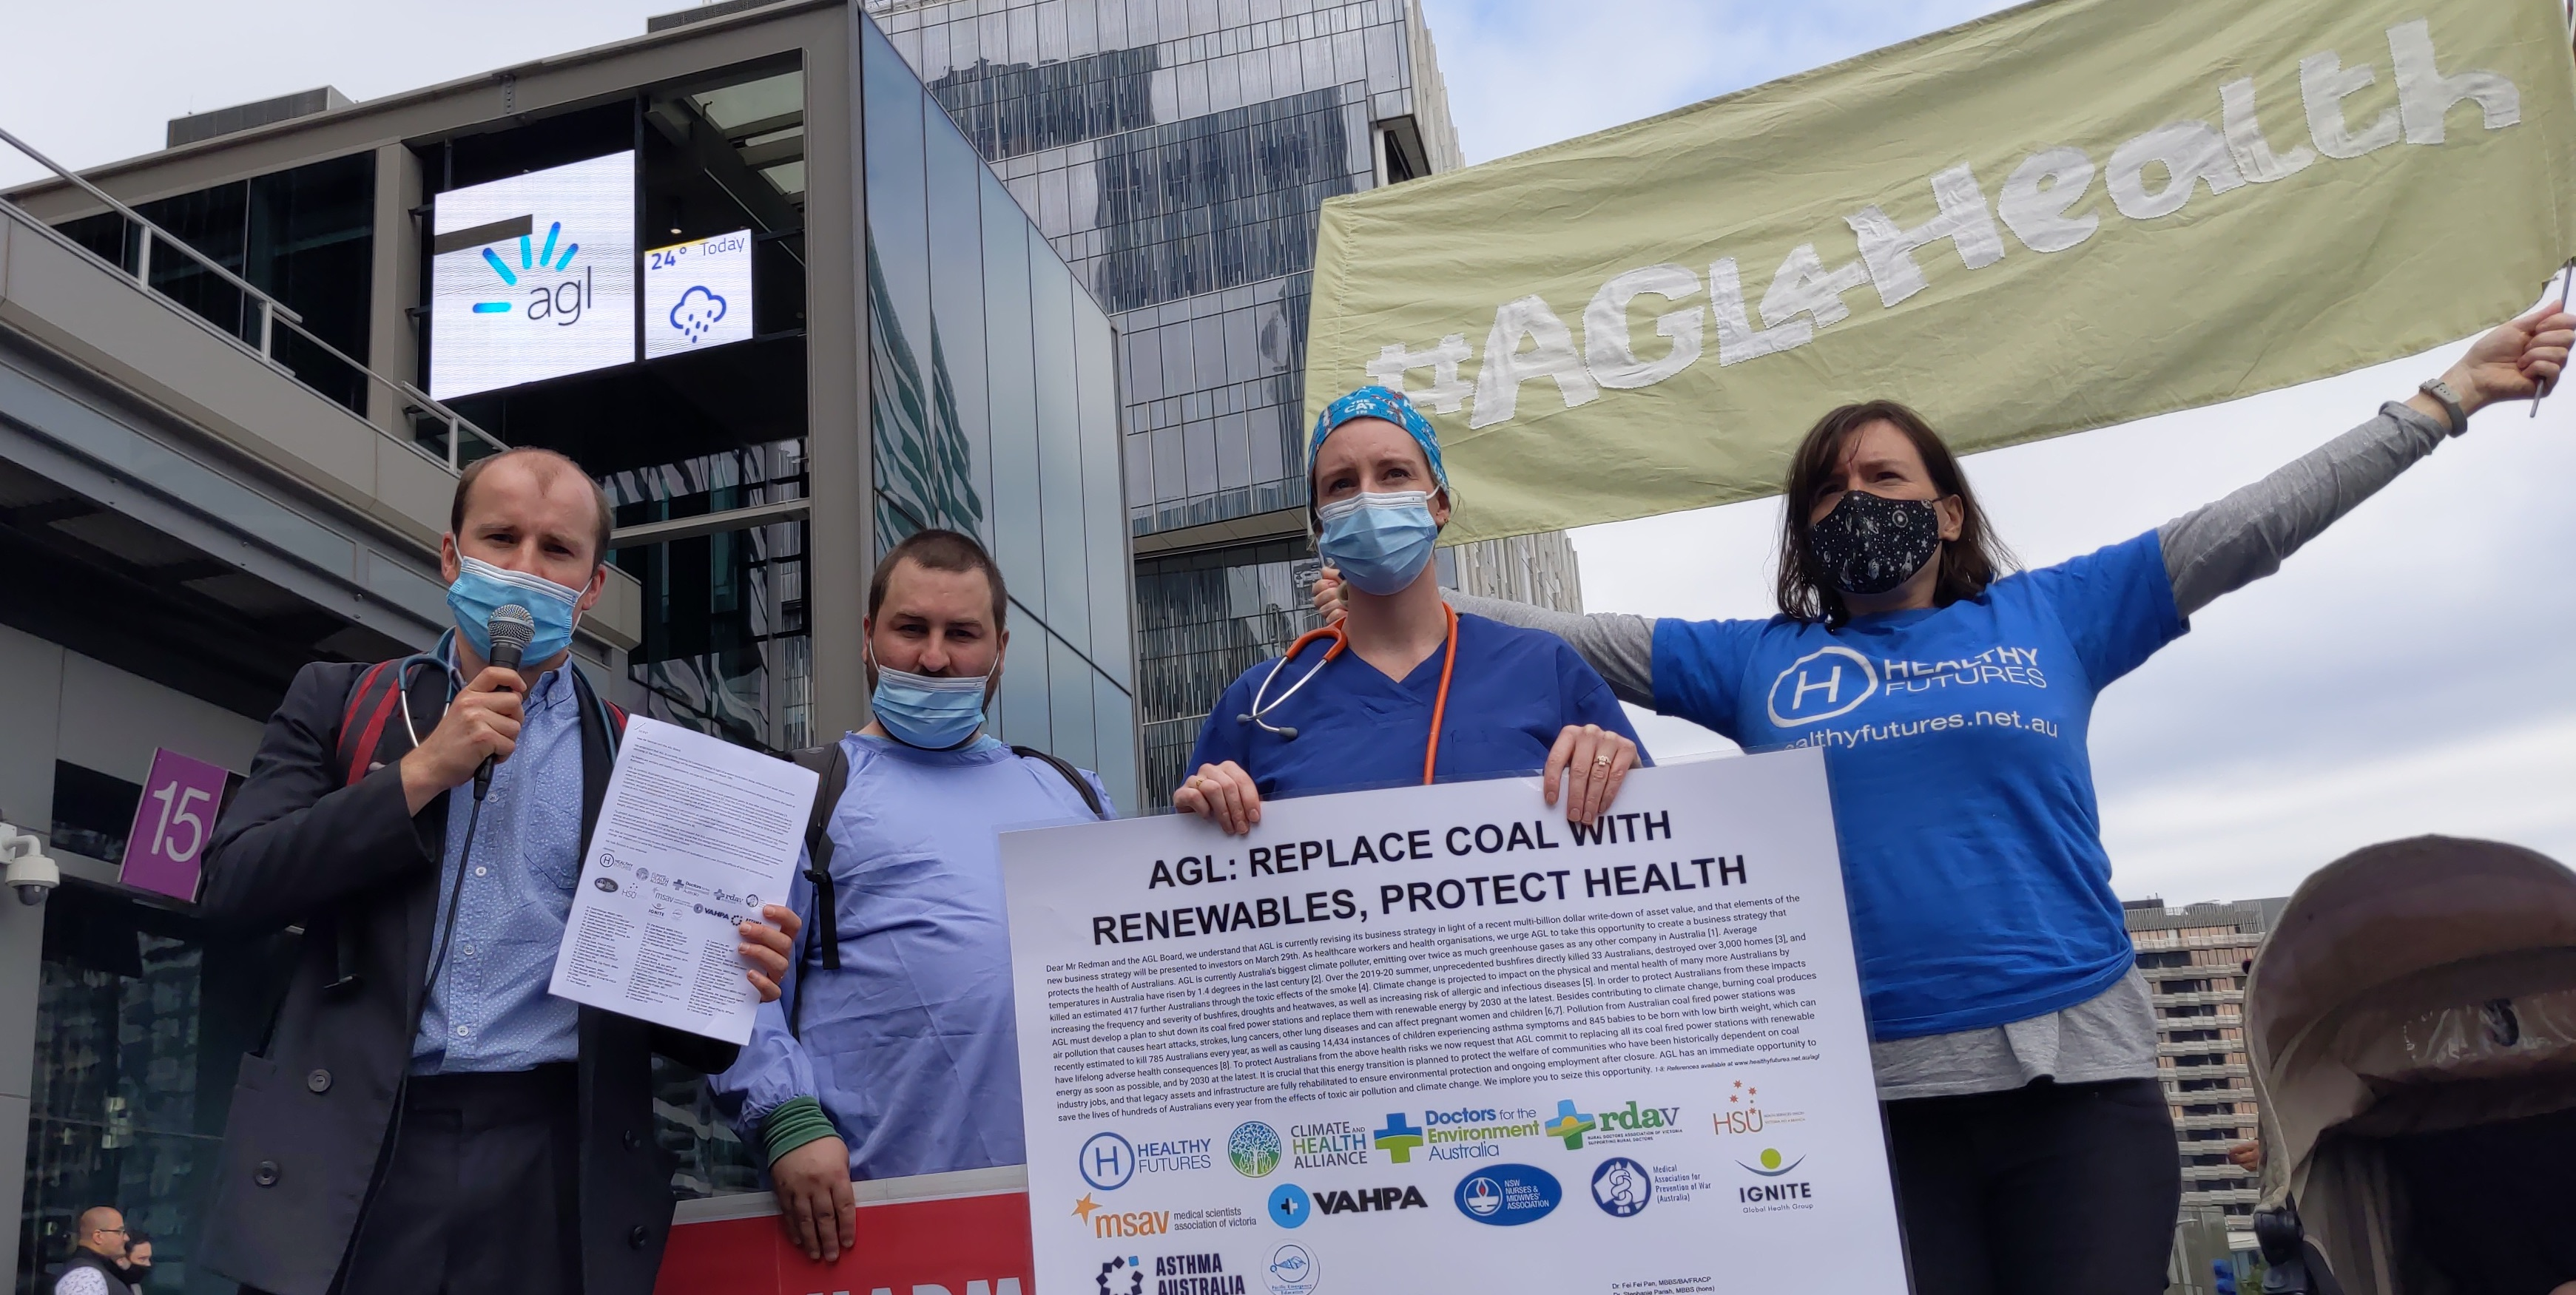 RACP | If you're an RACP member<br>ask them to advocate<br>to replace coal with renewables